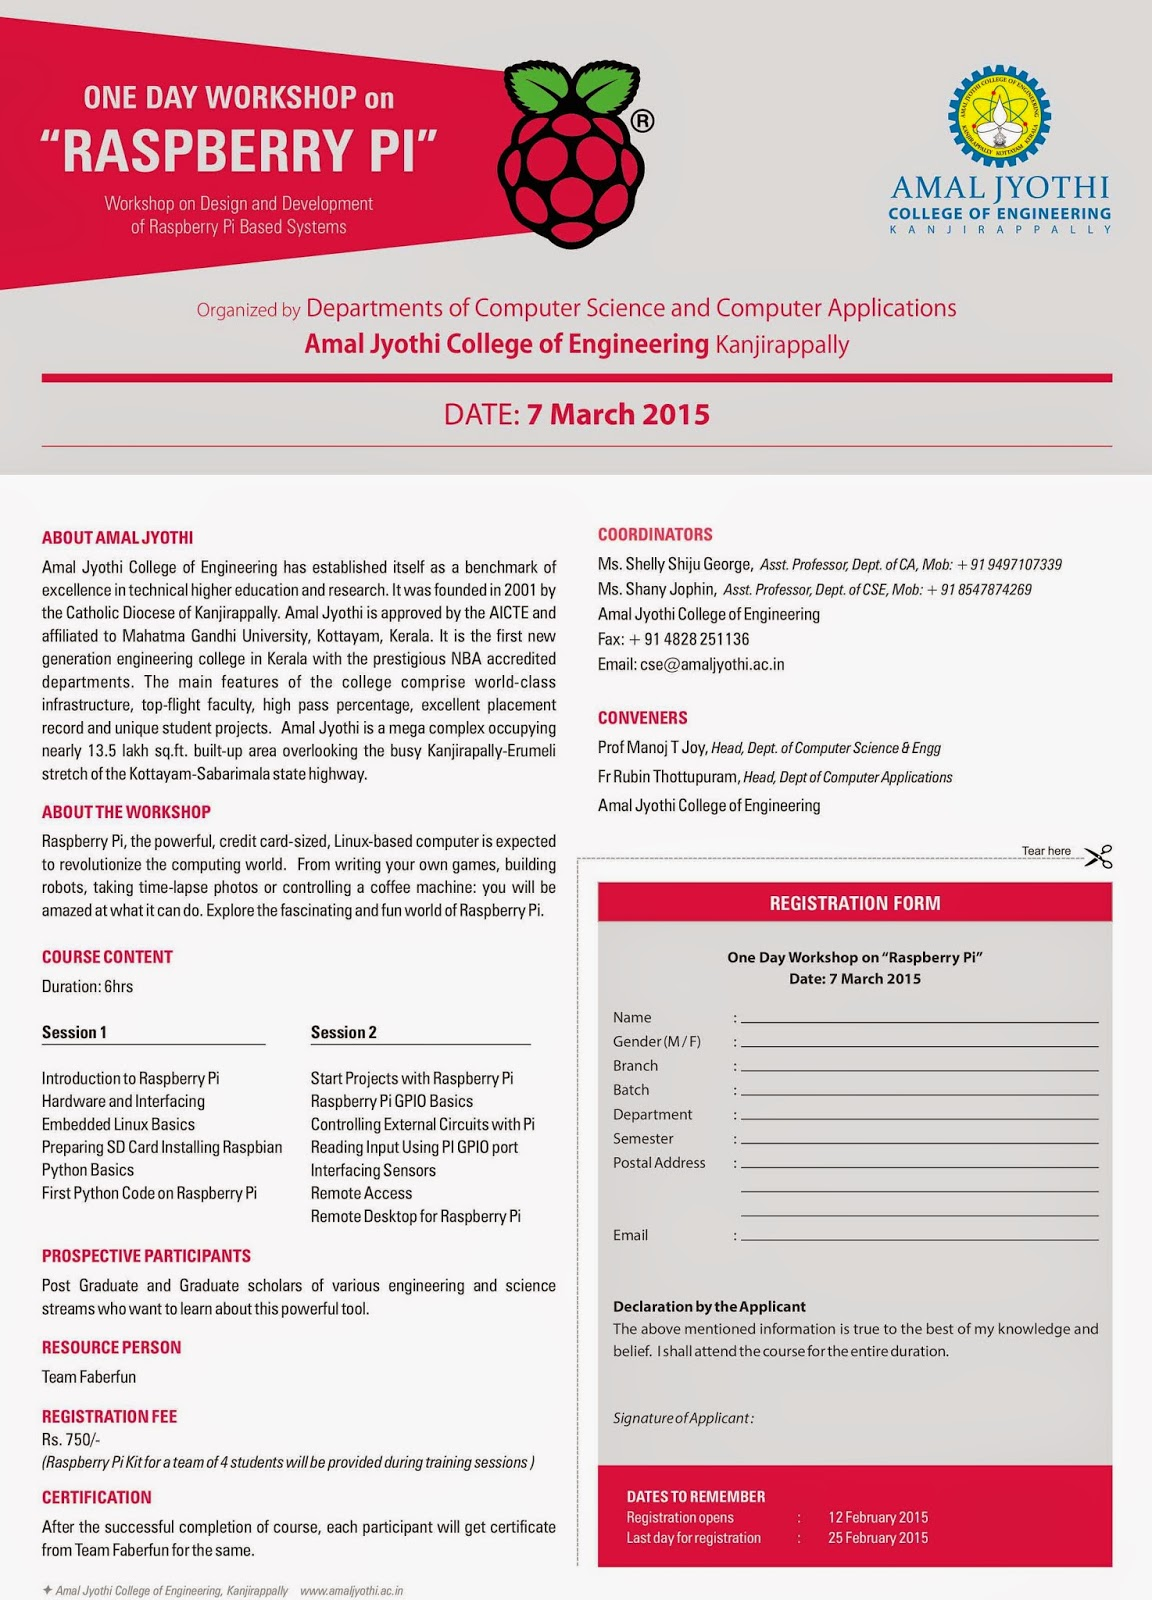 One Day Workshop On Raspberry Pi On March 7 2015 Computer Science